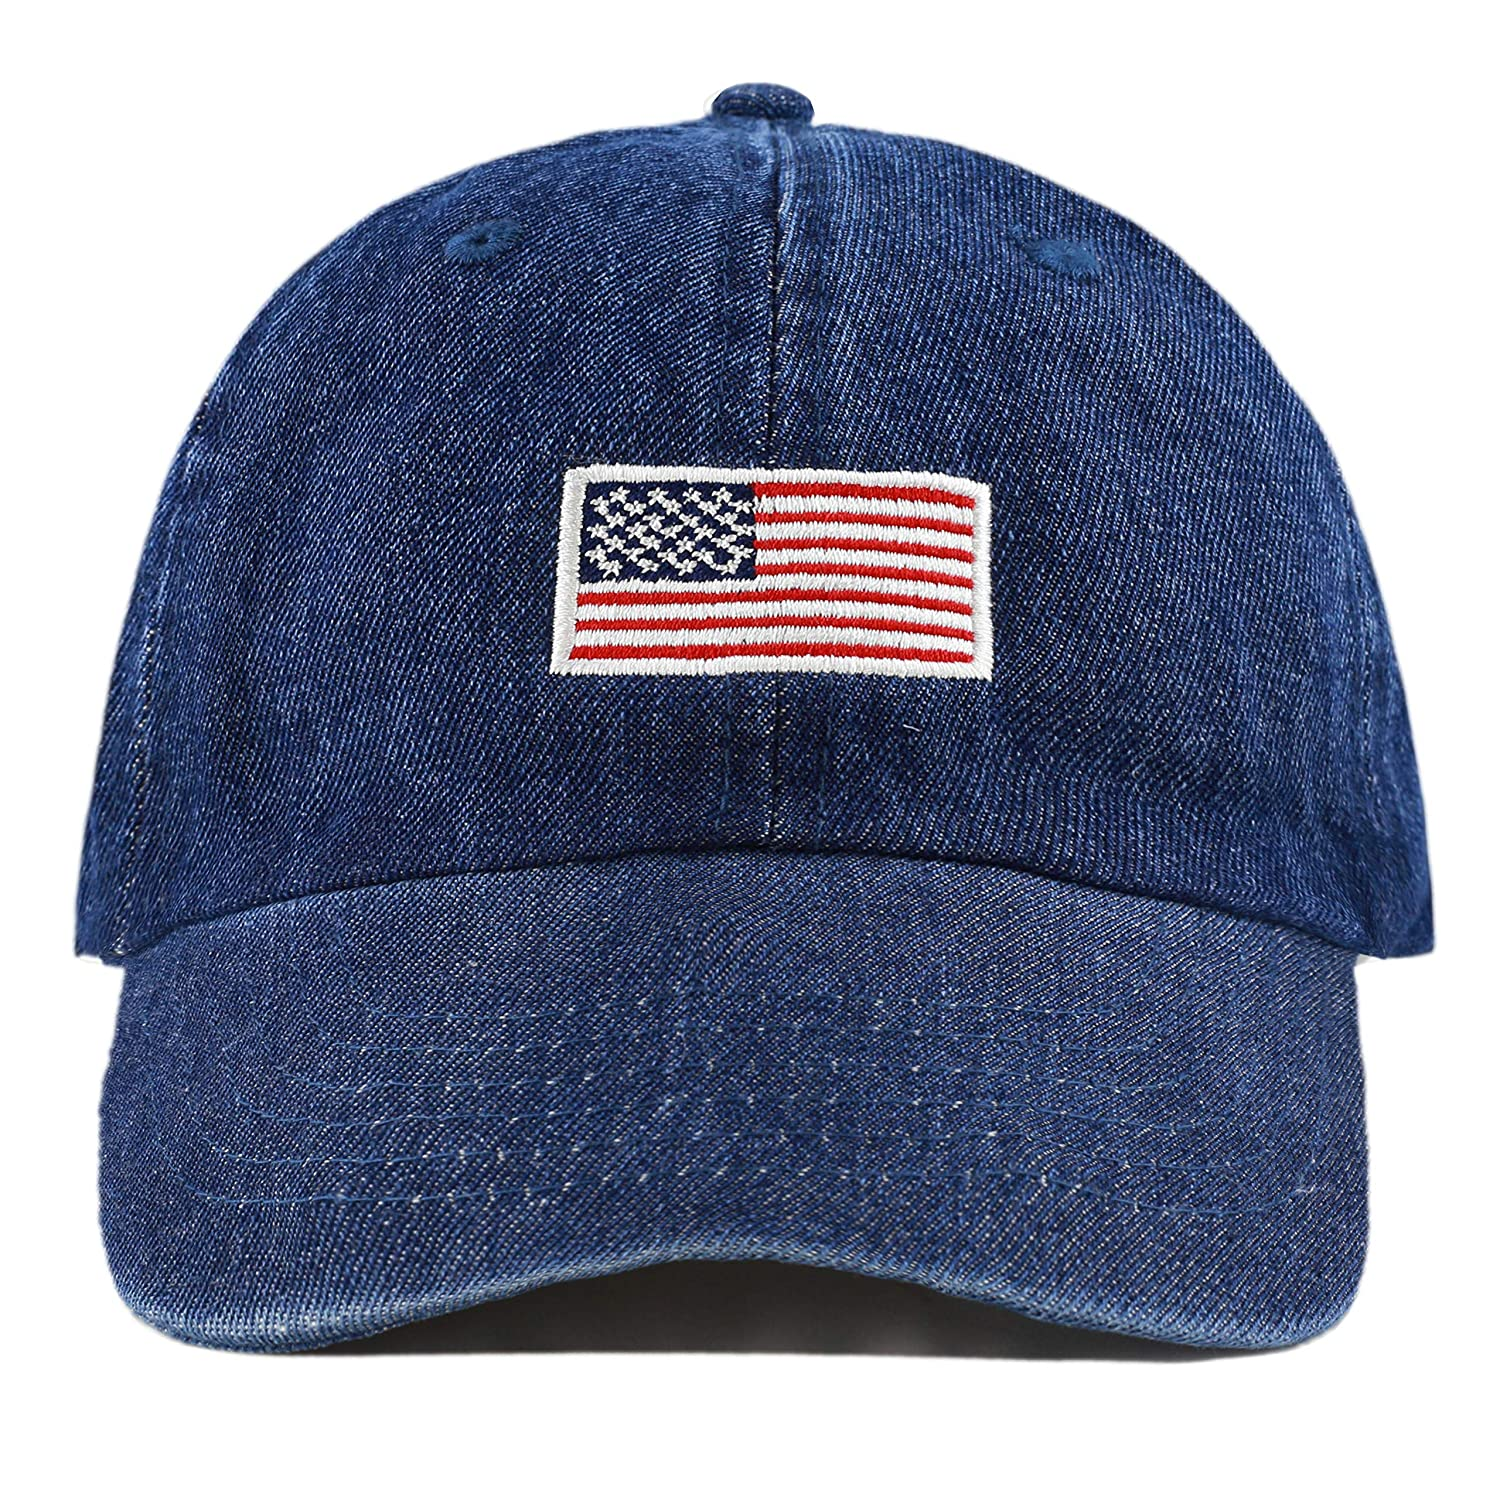 9d2c363acaa63c The Hat Depot Washed 100% Cotton Dad HAT Flag Low Profile Adjustable Baseball  Cap (Flag - Dark Denim) at Amazon Women's Clothing store: